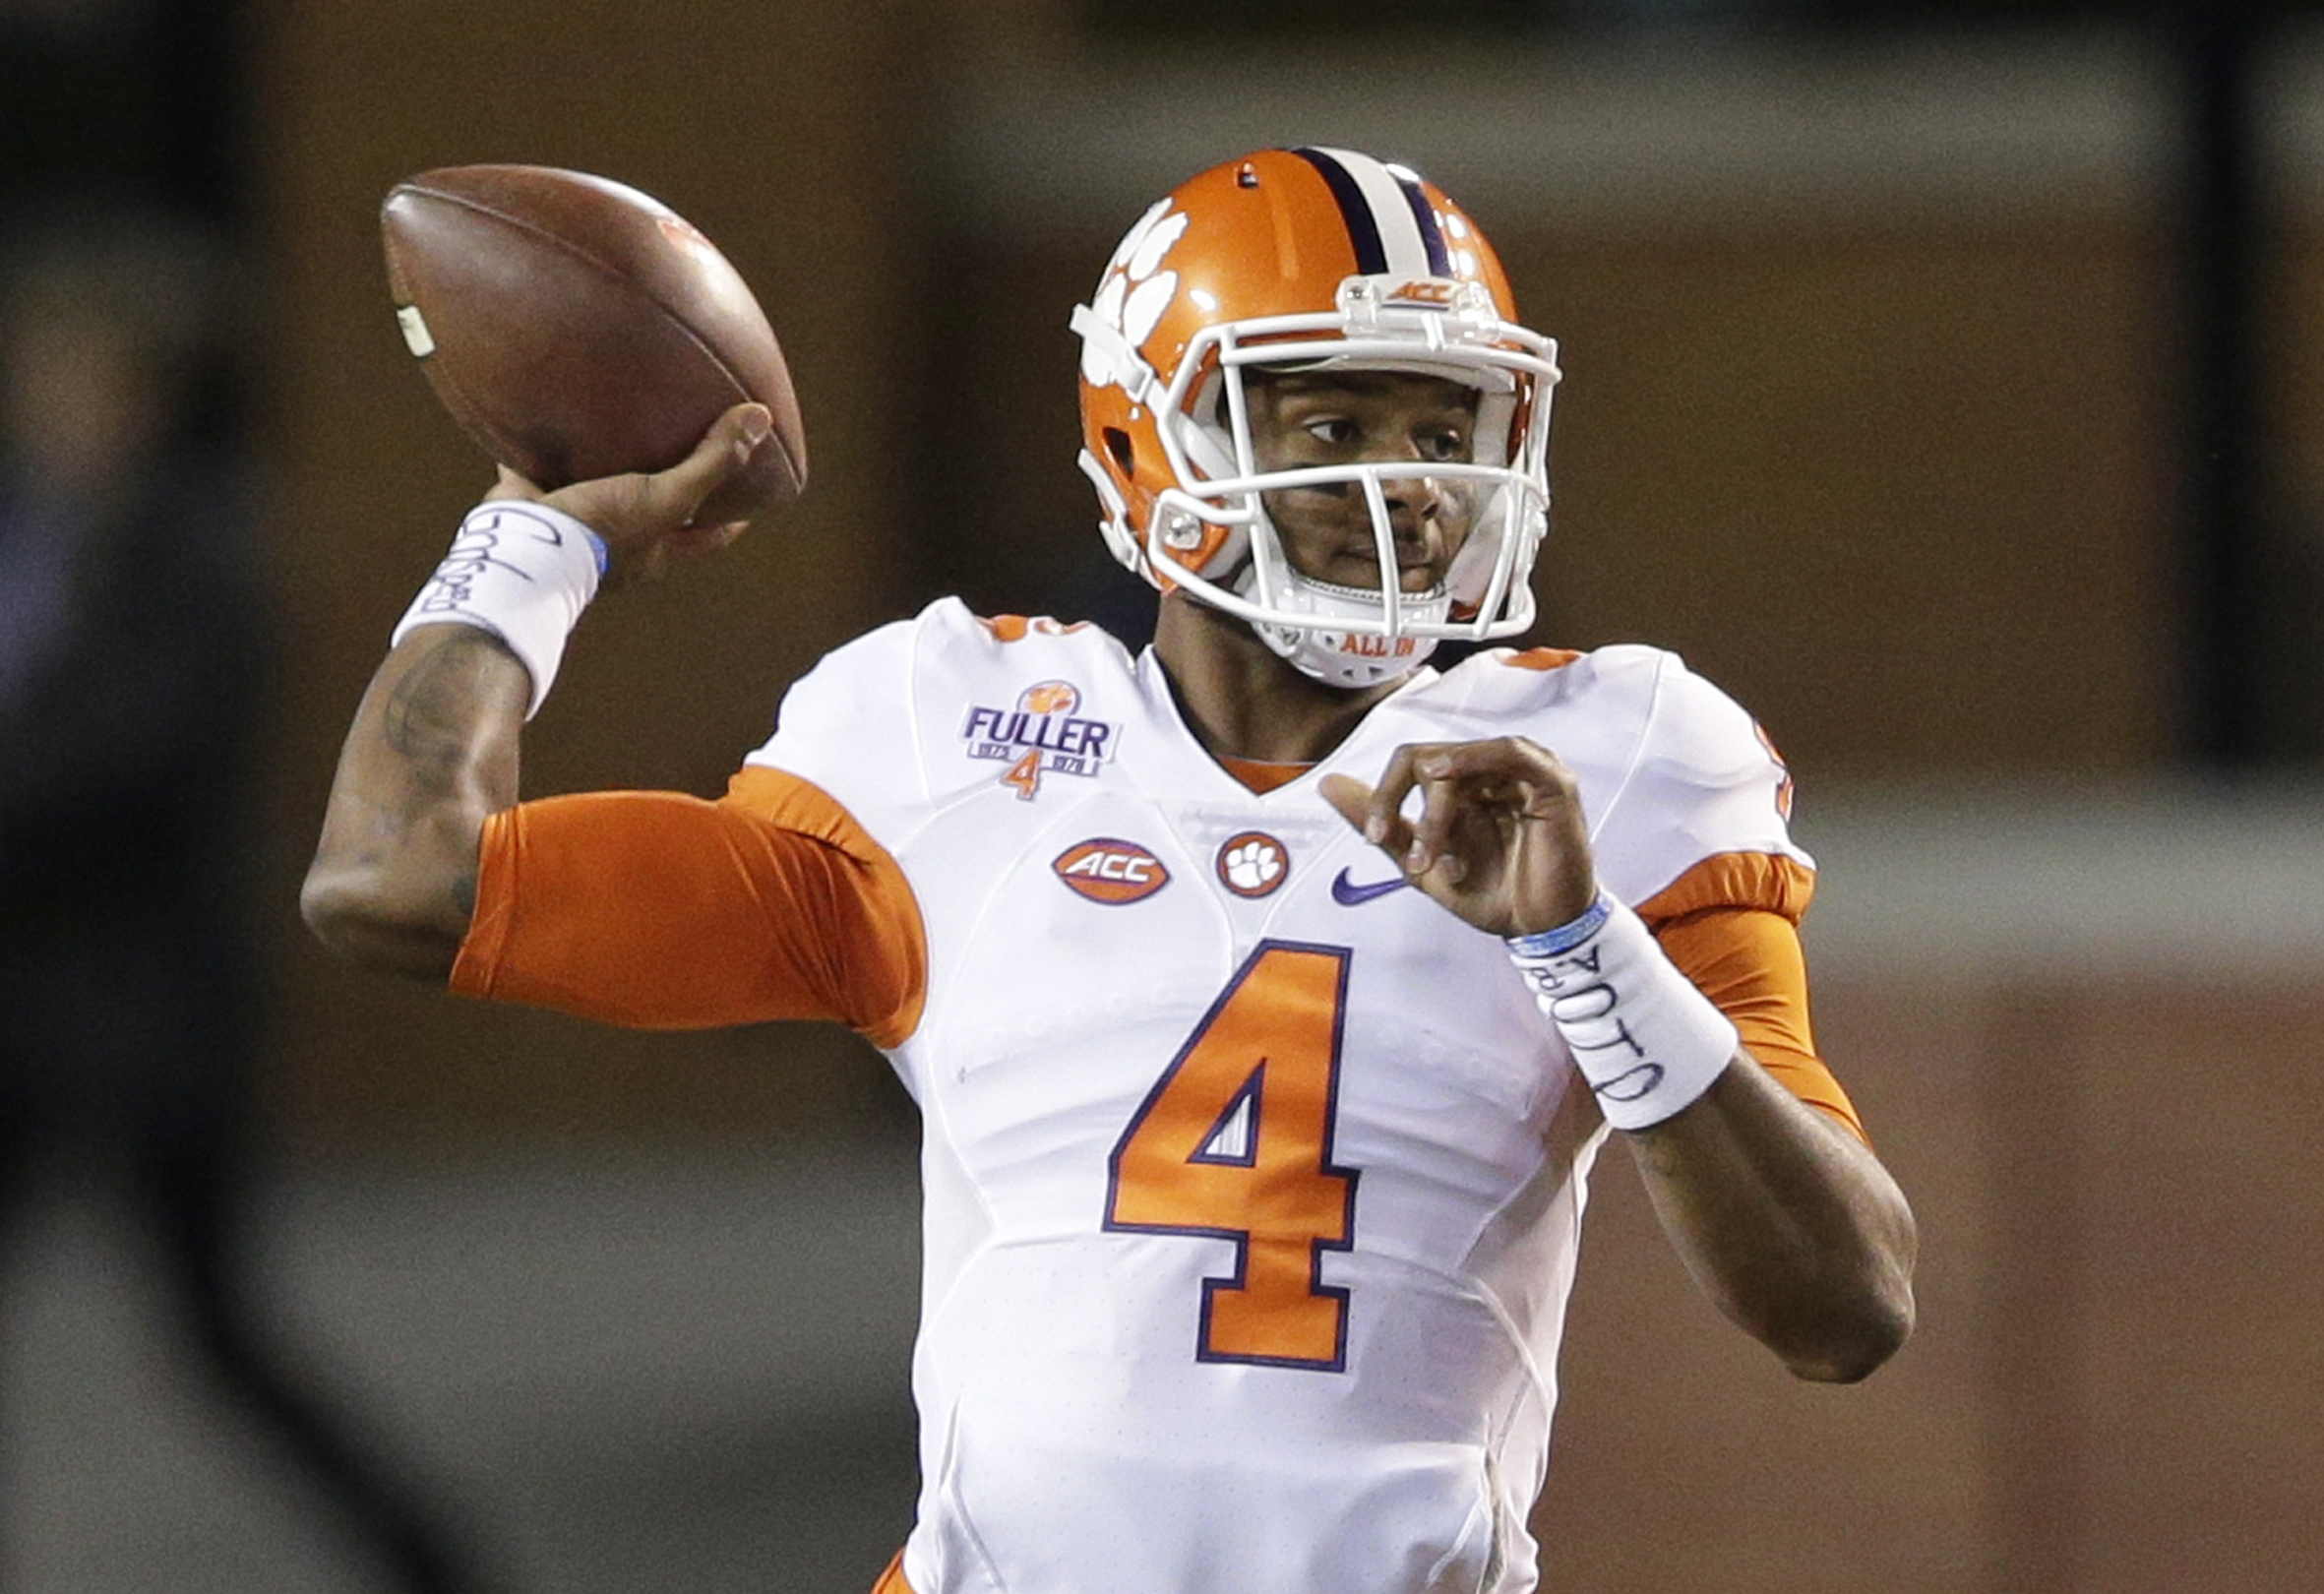 Clemson's Deshaun Watson looks to pass against Wake Forest during the first half of an NCAA college football game in Winston-Salem, N.C., Saturday, Nov. 19, 2016. Clemson won 35-13. (AP Photo/Chuck Burton)